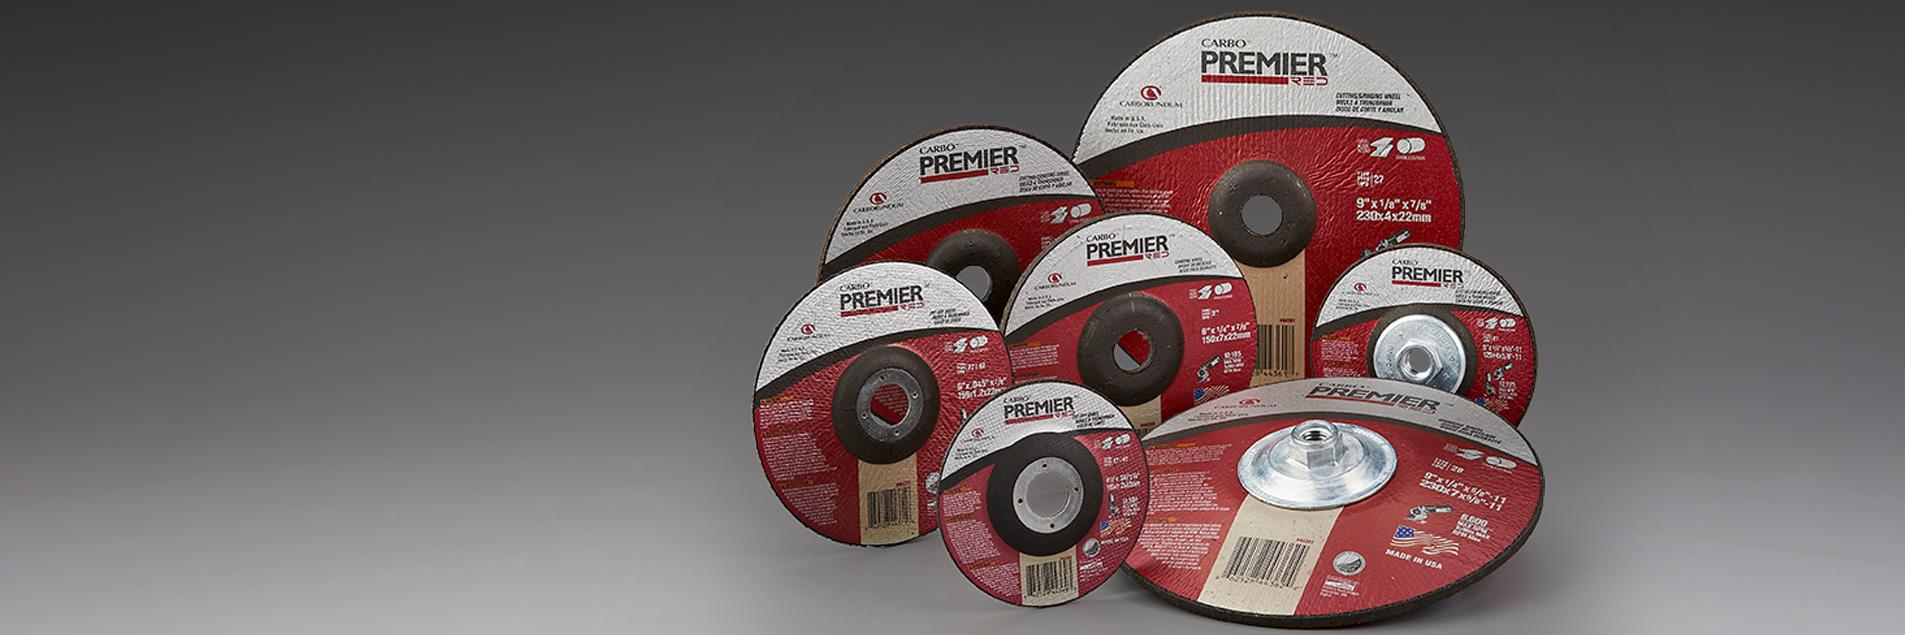 Carbo Premier Red Depressed Center Wheels